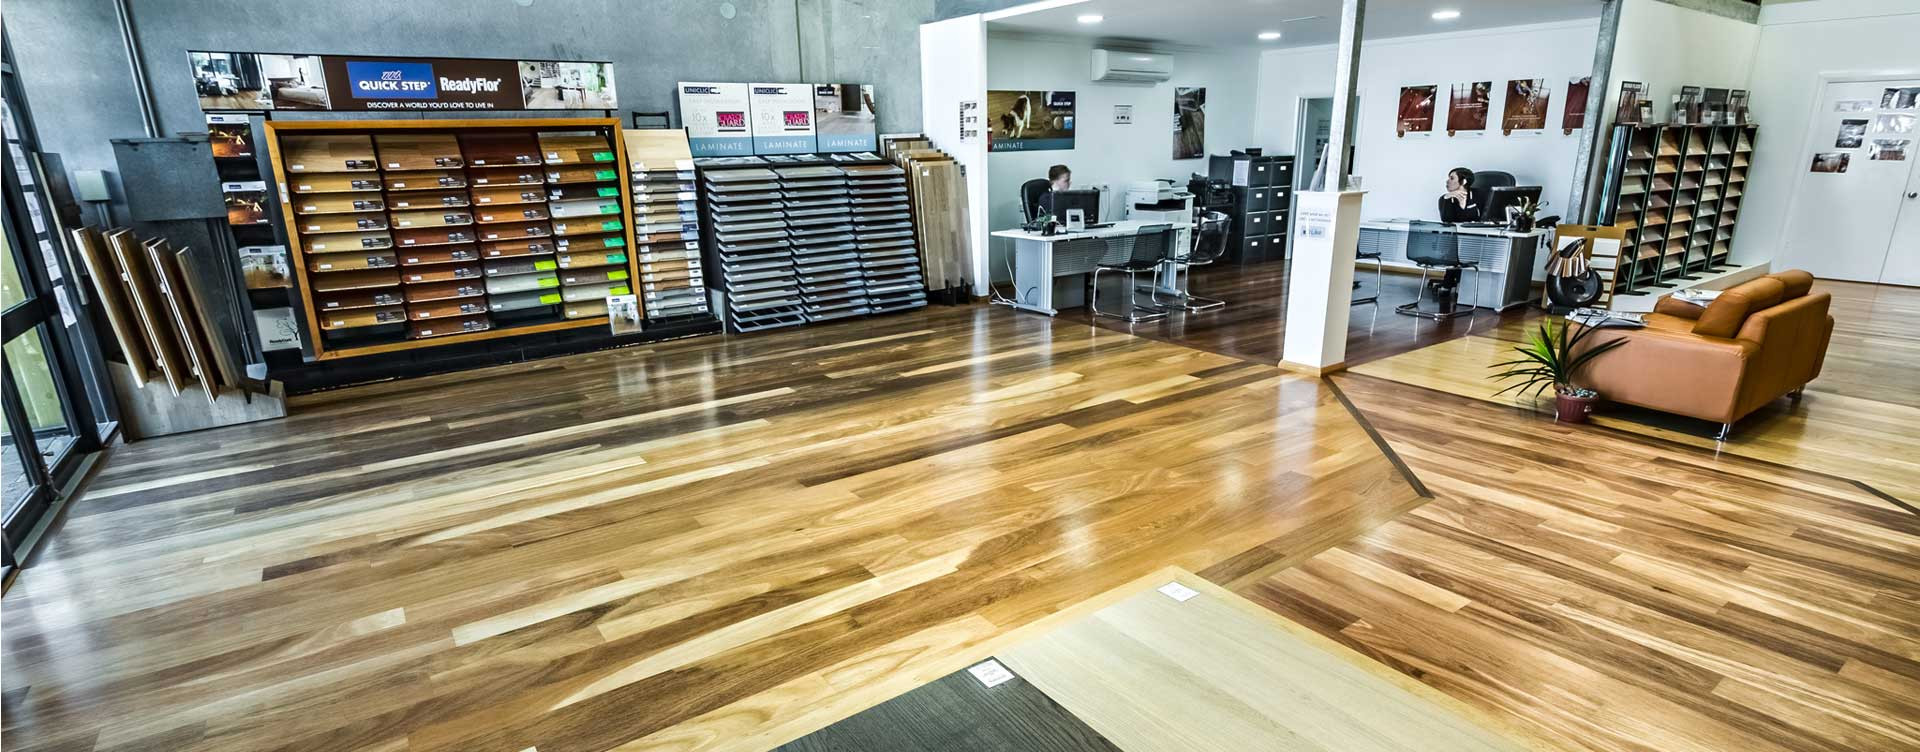 how to install hardwood floors with glue of timber flooring perth coastal flooring wa quality wooden regarding thats why they call us the home of fine wood floors